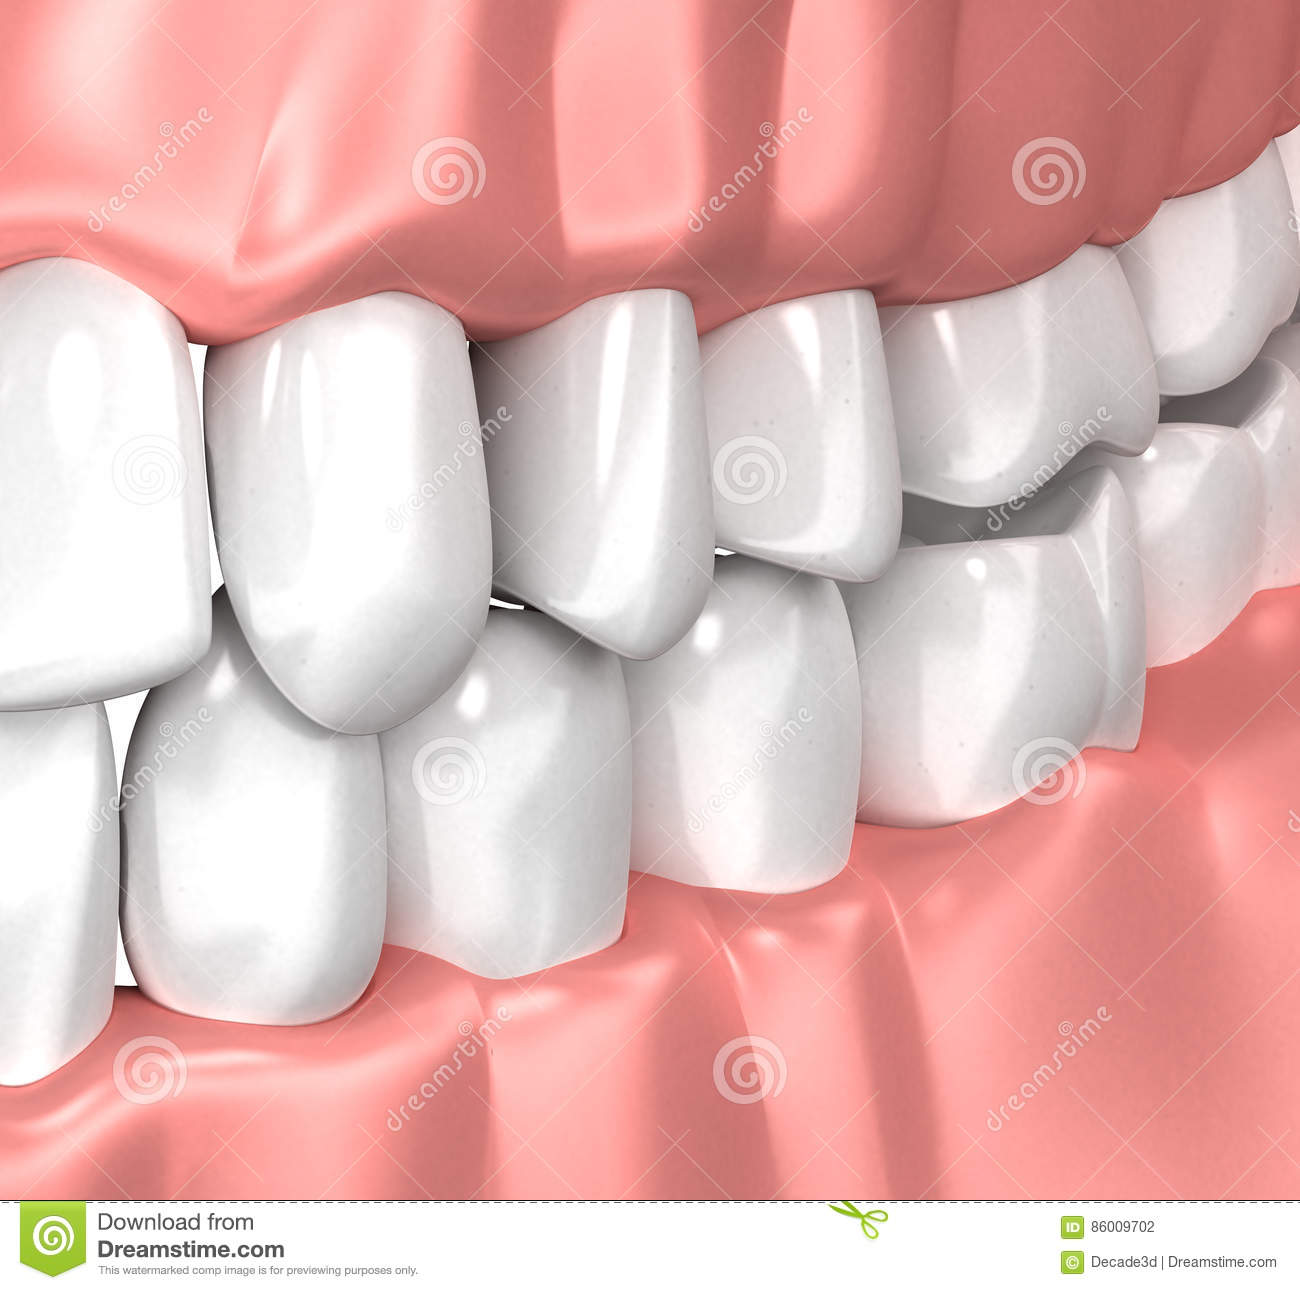 Teeth Gum Human Mouth Anatomy 3d Illustration Stock Illustration